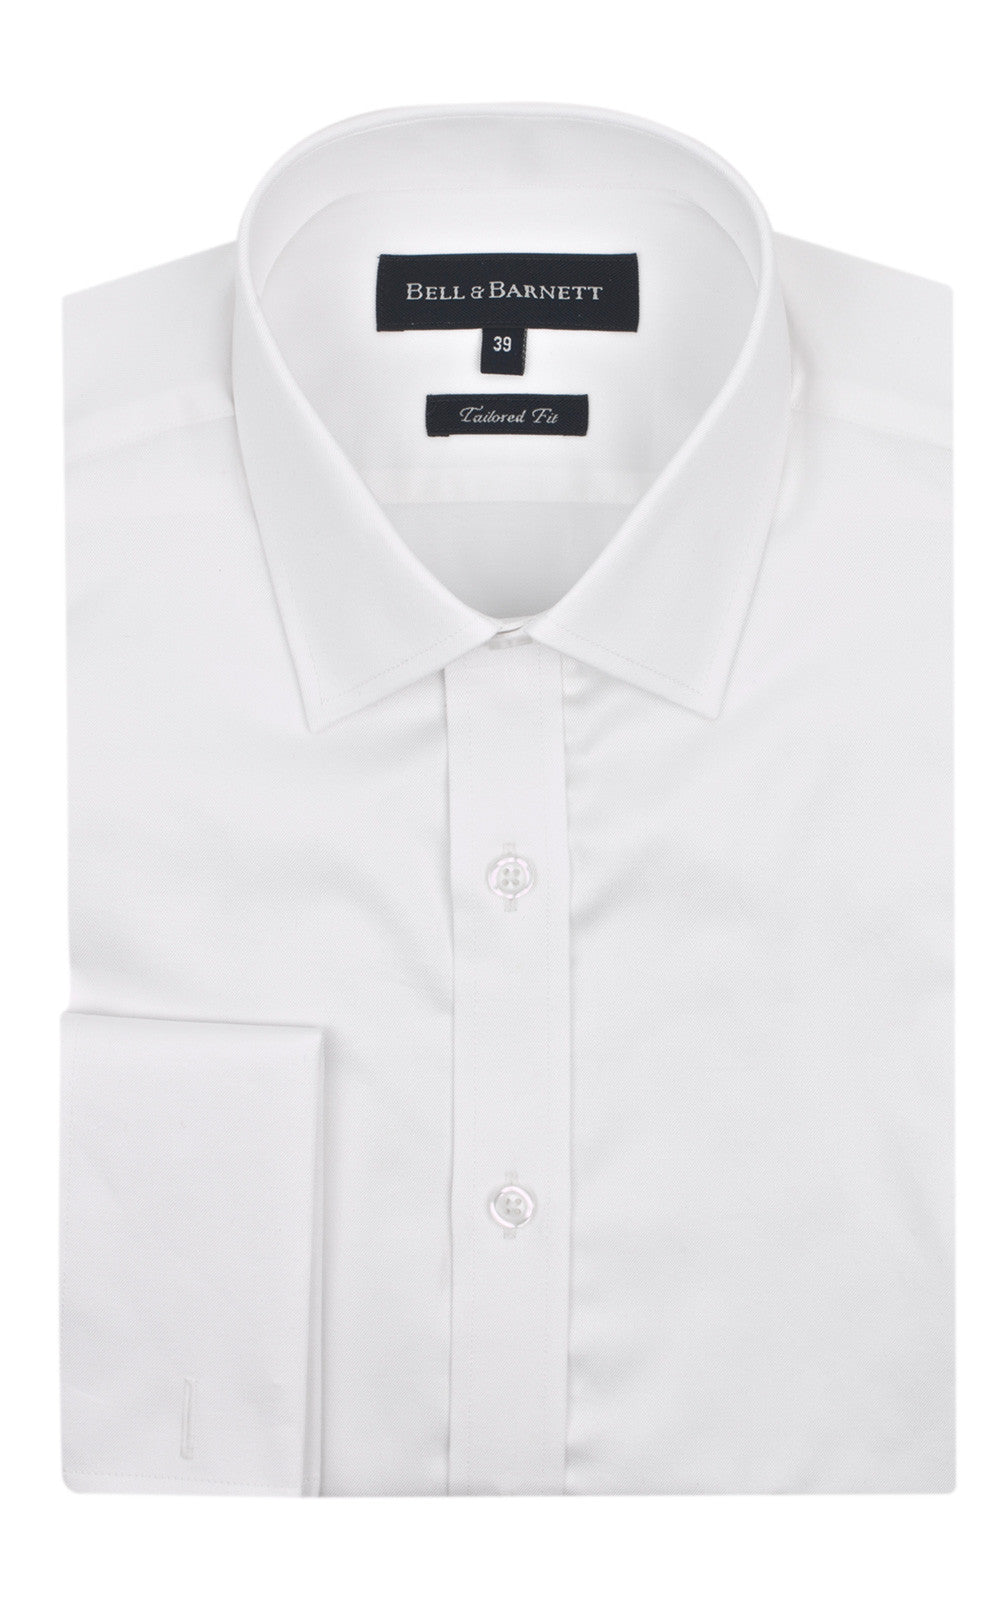 Duke Ivory French Cuff Formal Shirt - front.